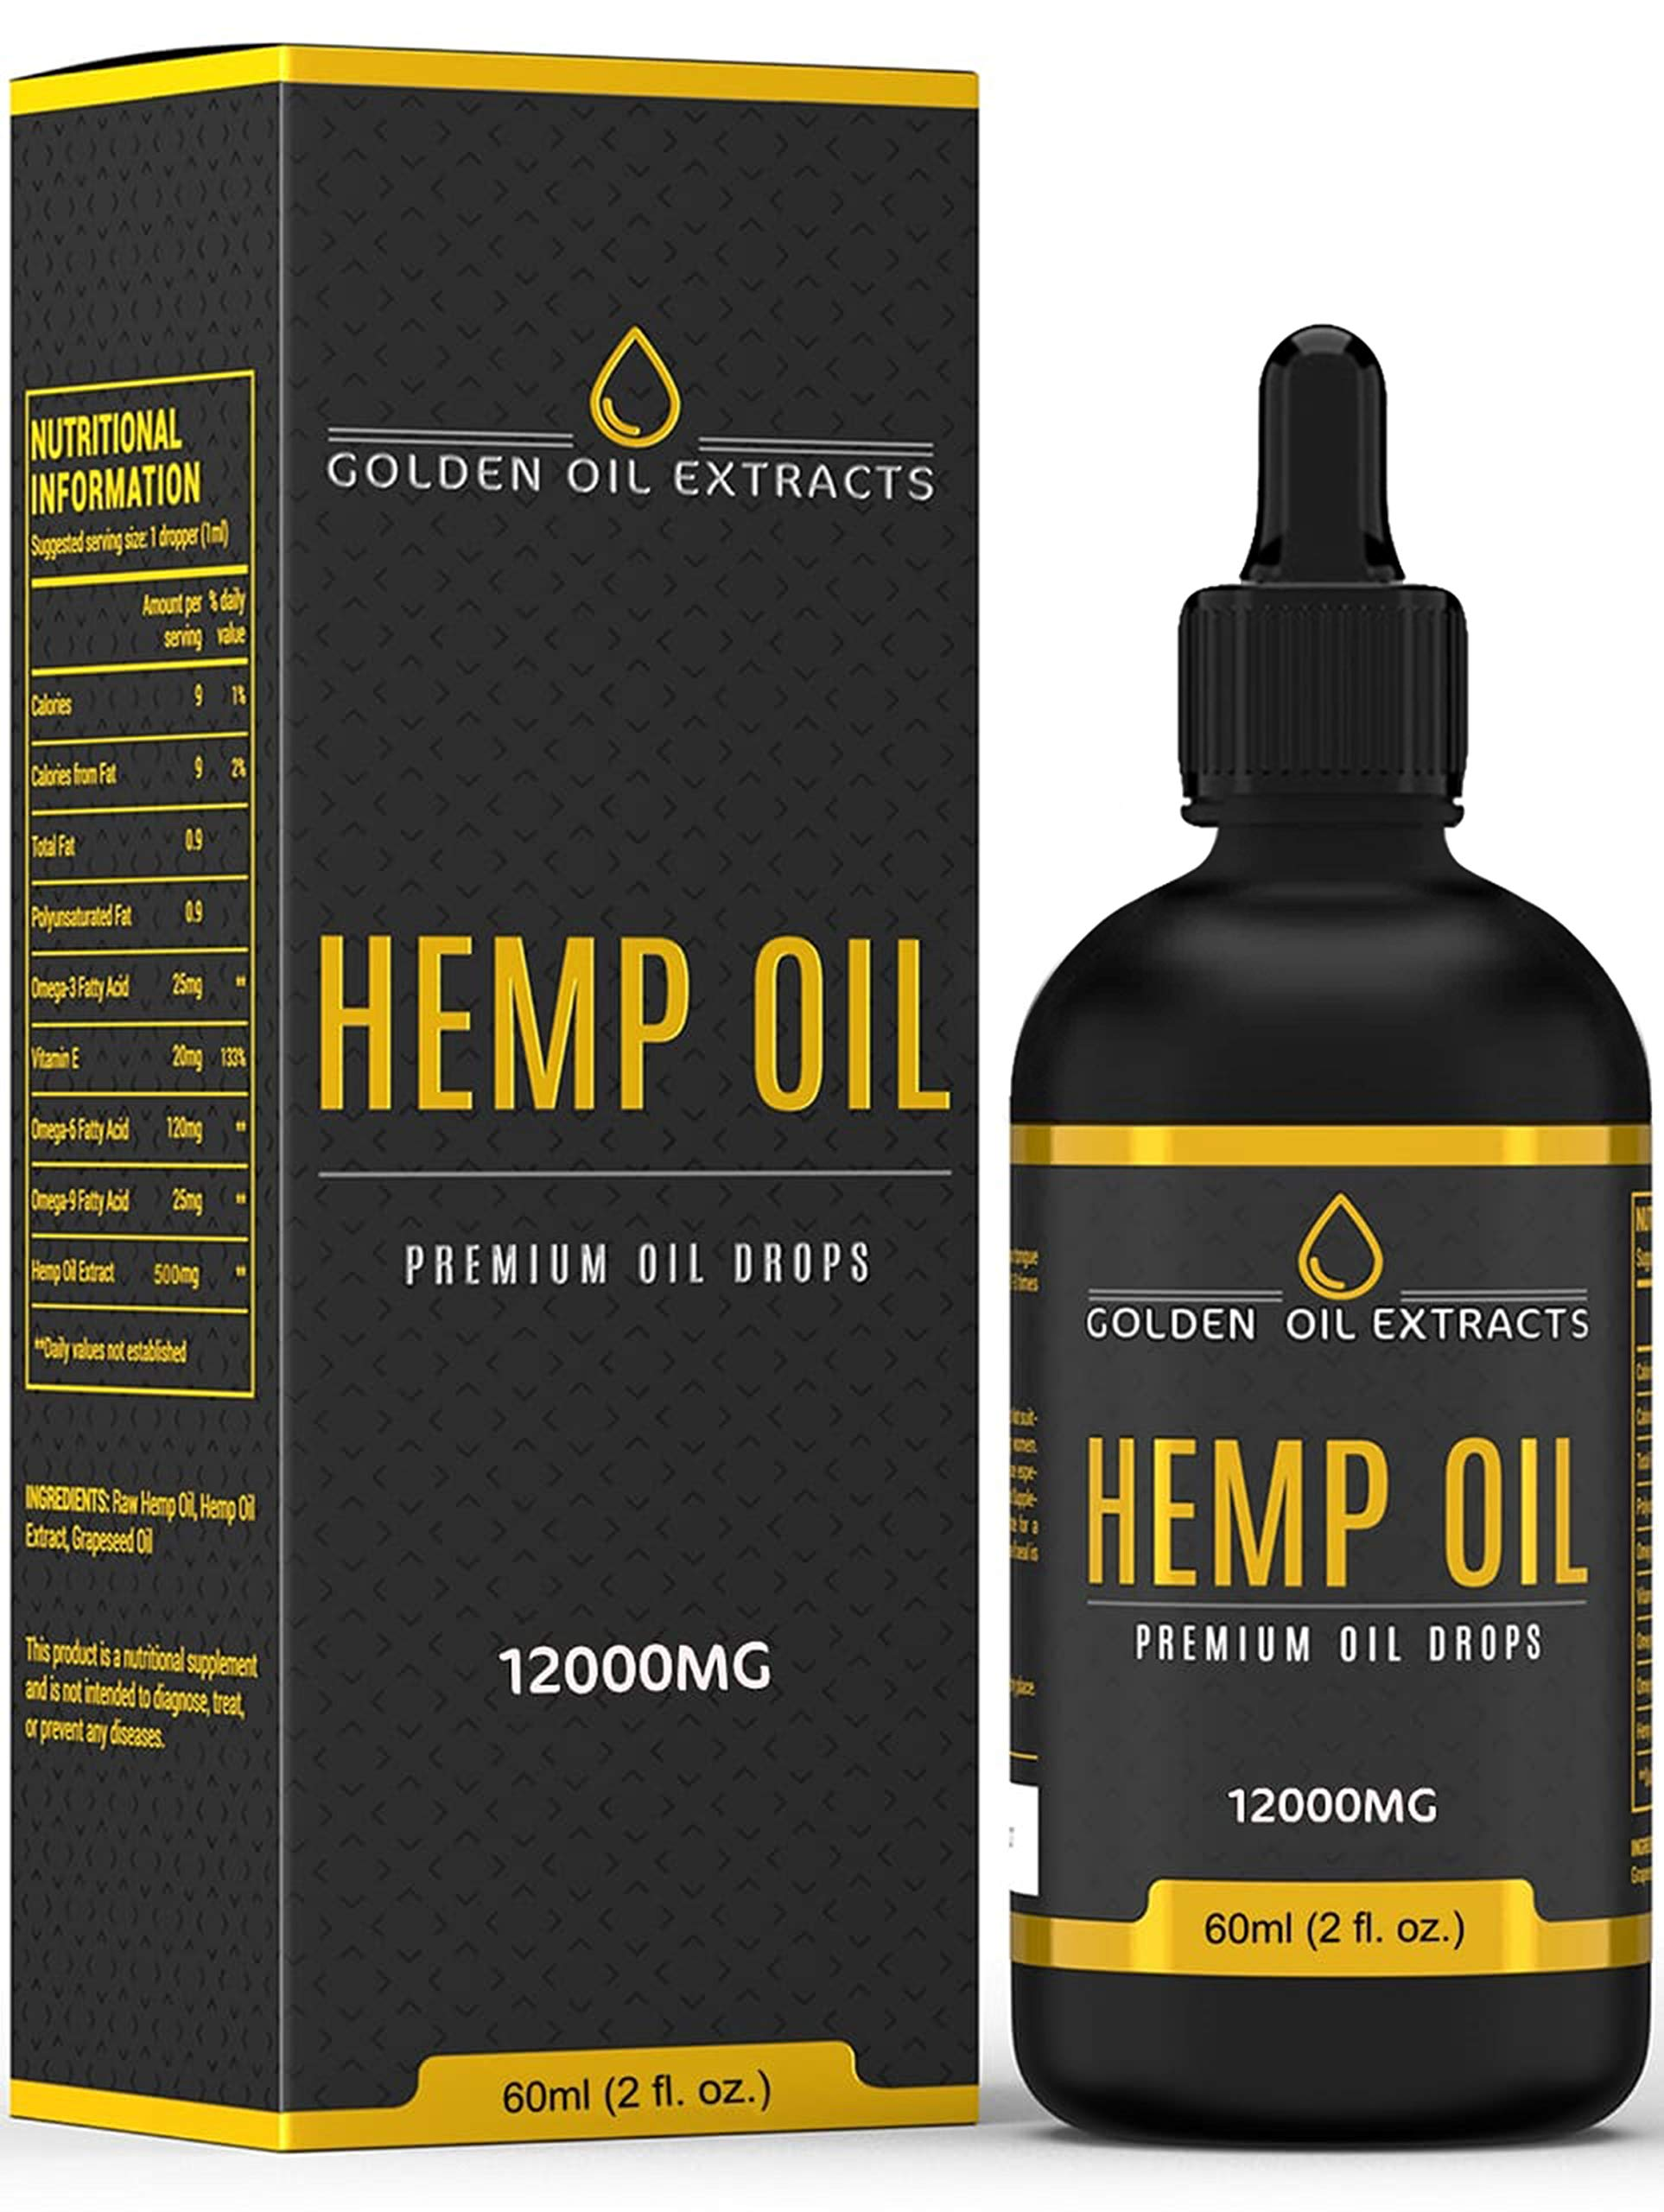 Golden Oil Extracts 12,000mg 60ml High Strength Liquid Hemp Oil Drops 60% Relief Omega 3